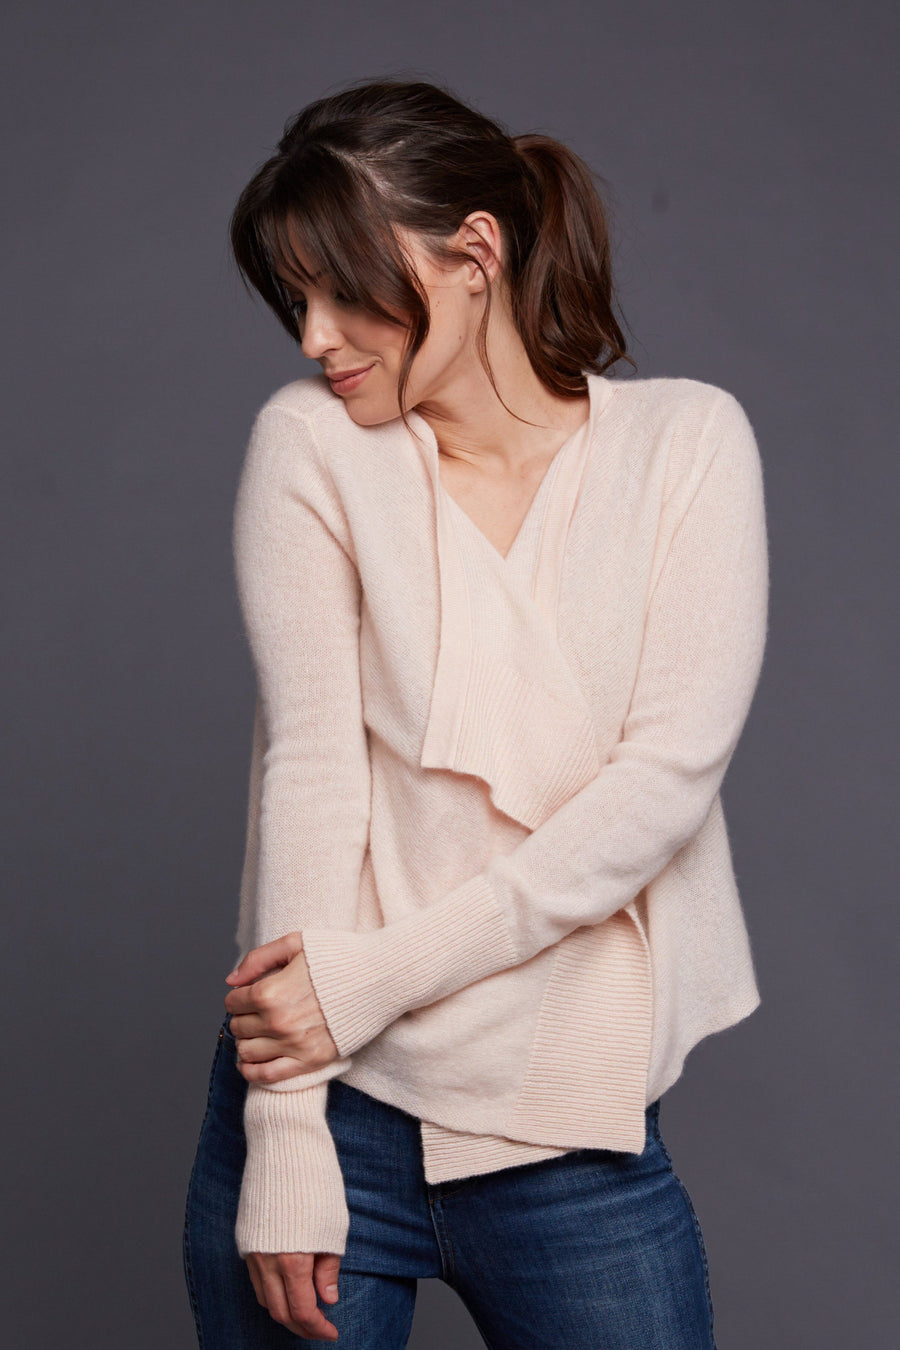 pine cashmere cami women's 100% pure cashmere open draped cardigan in light pink